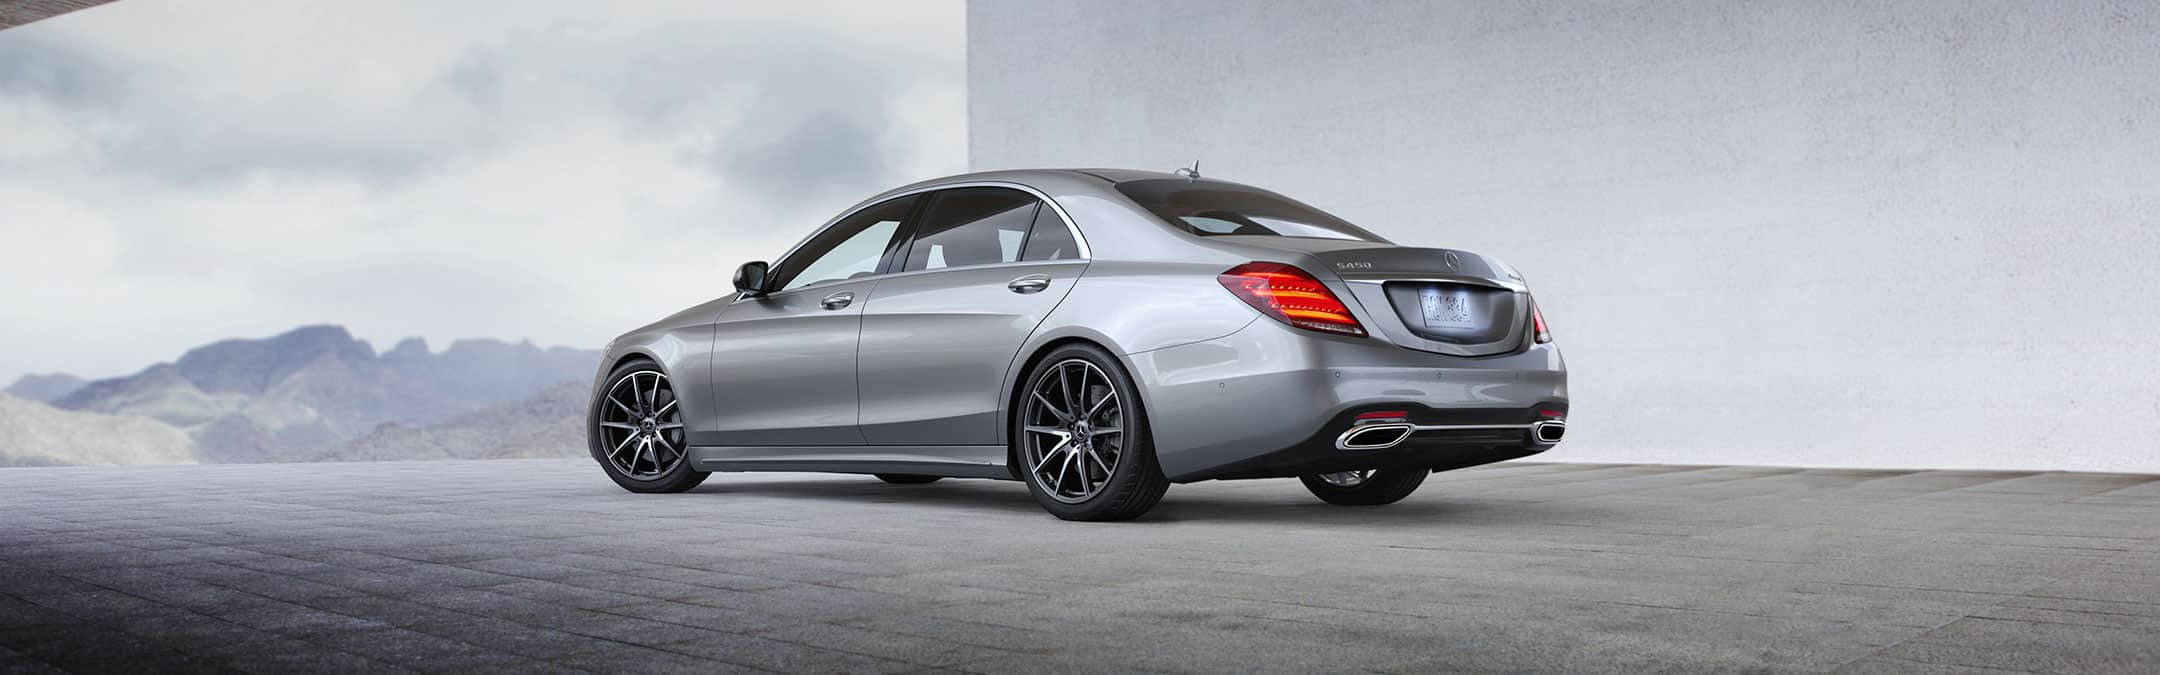 The 2019 S-Class Sedan